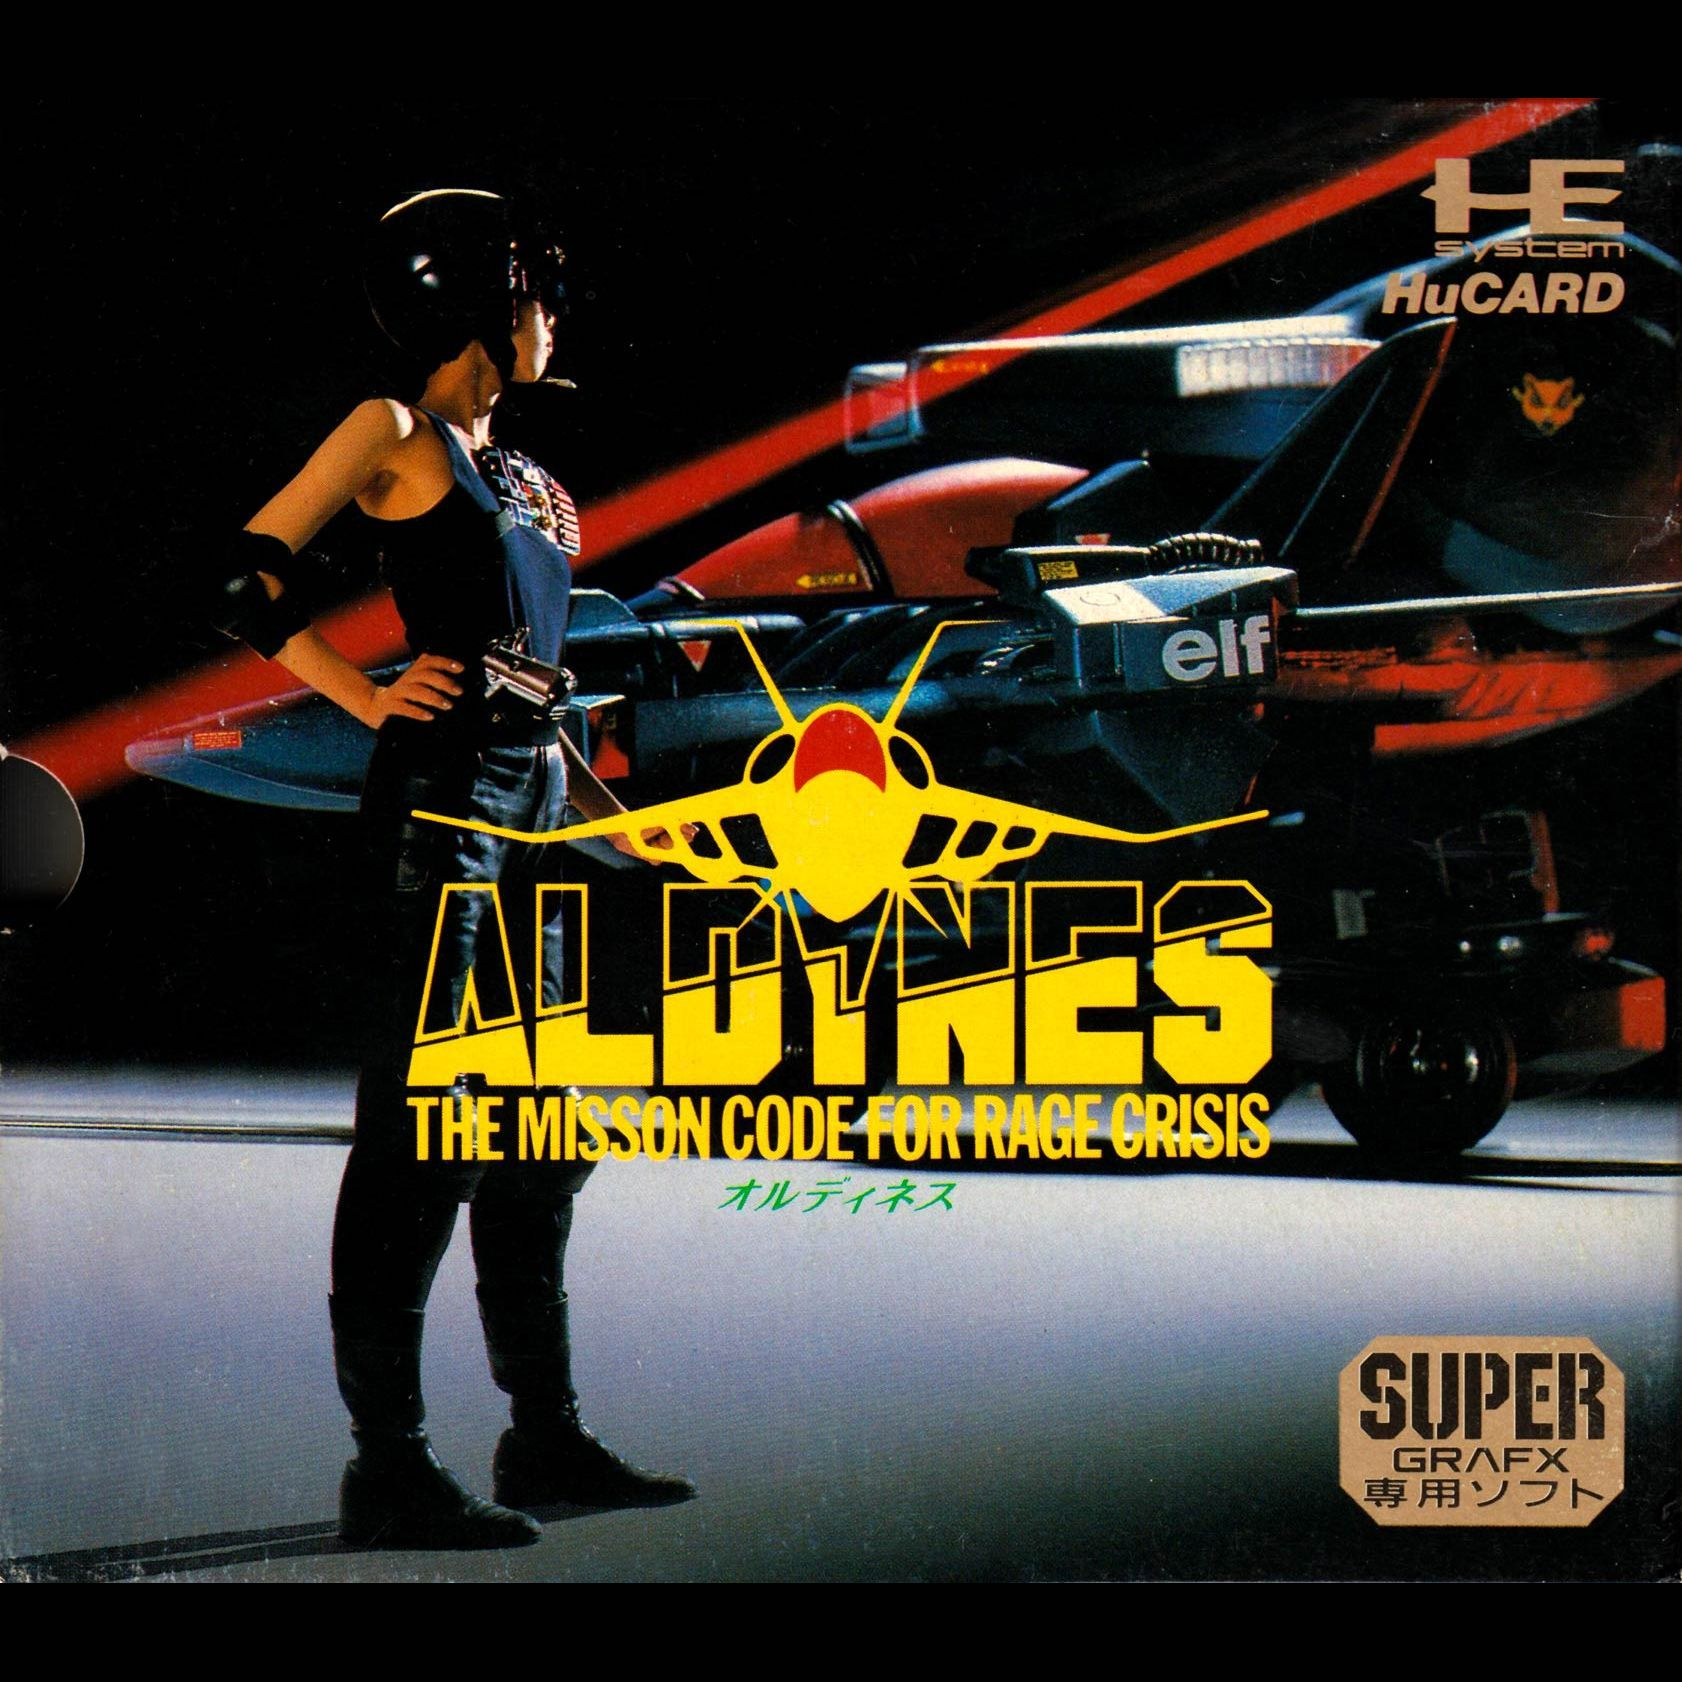 Aldynes PC Engine NTSCJ (With images) Old games